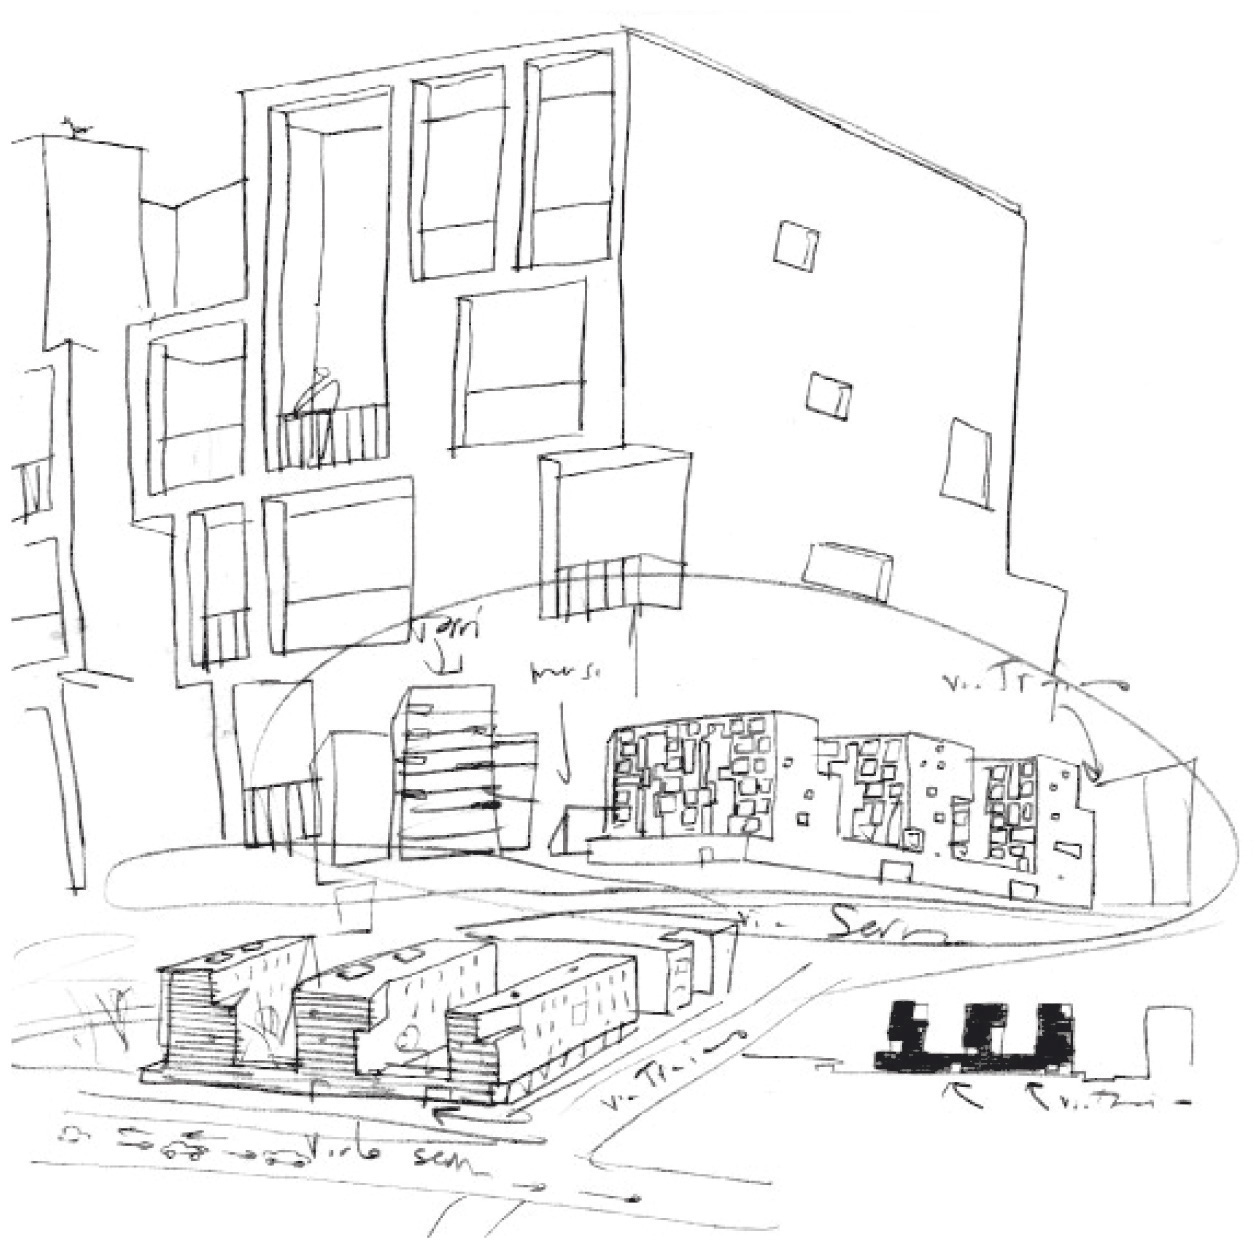 Inspiration and Process in Architecture - Cino Zucchi